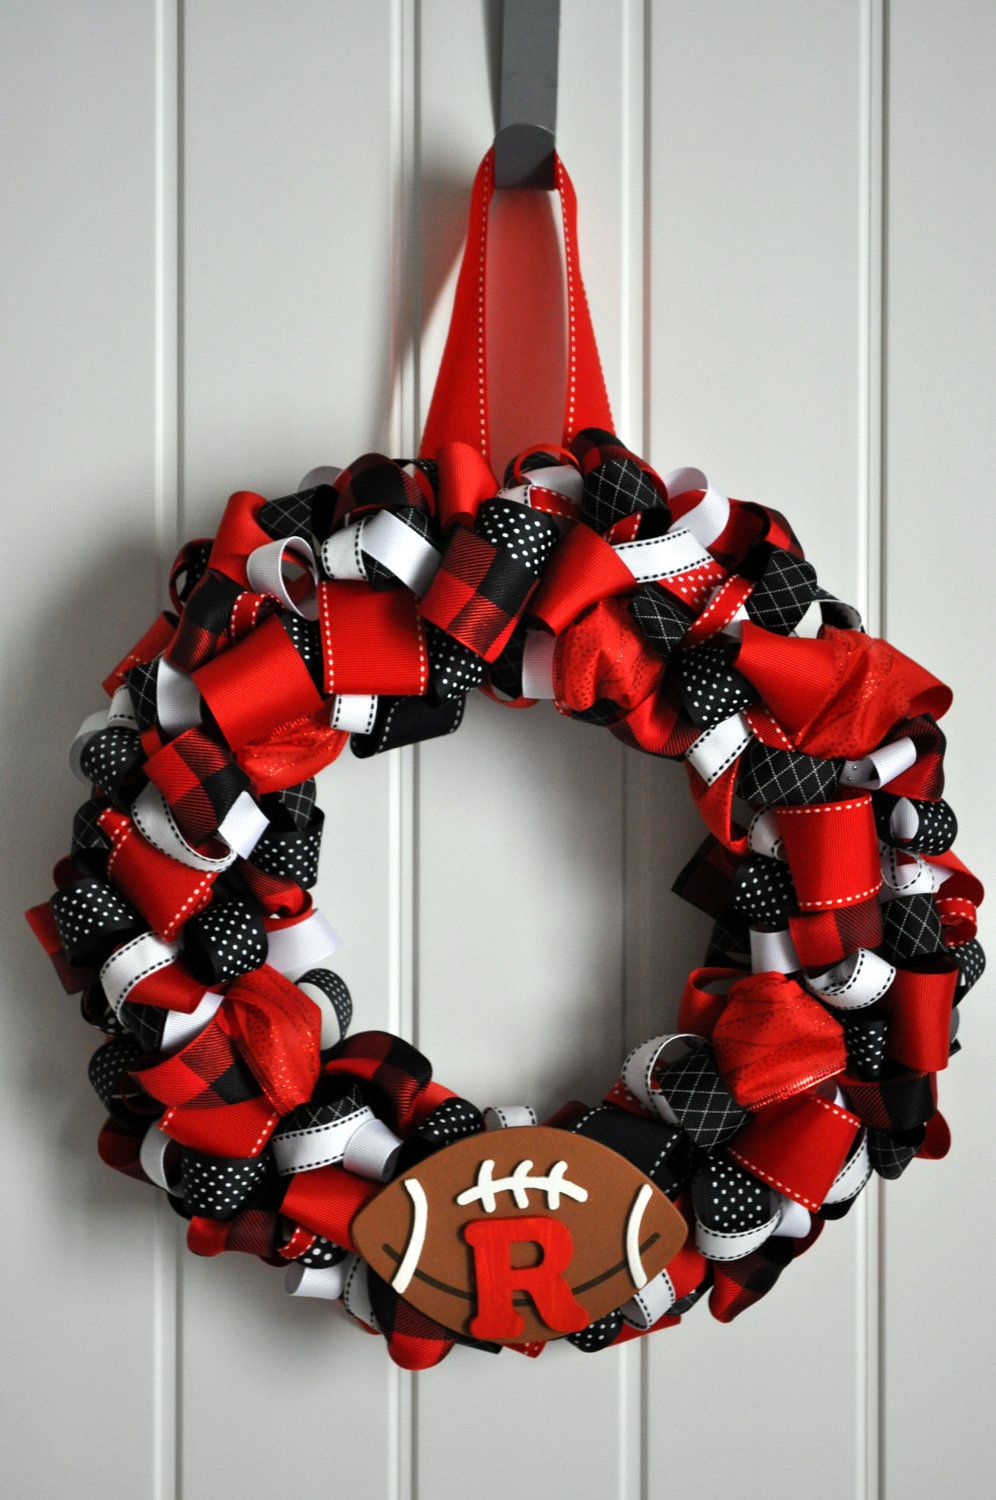 Rutgers ornament - Large Board Http Www Pinterest Com Jerilyn1432 Wreaths